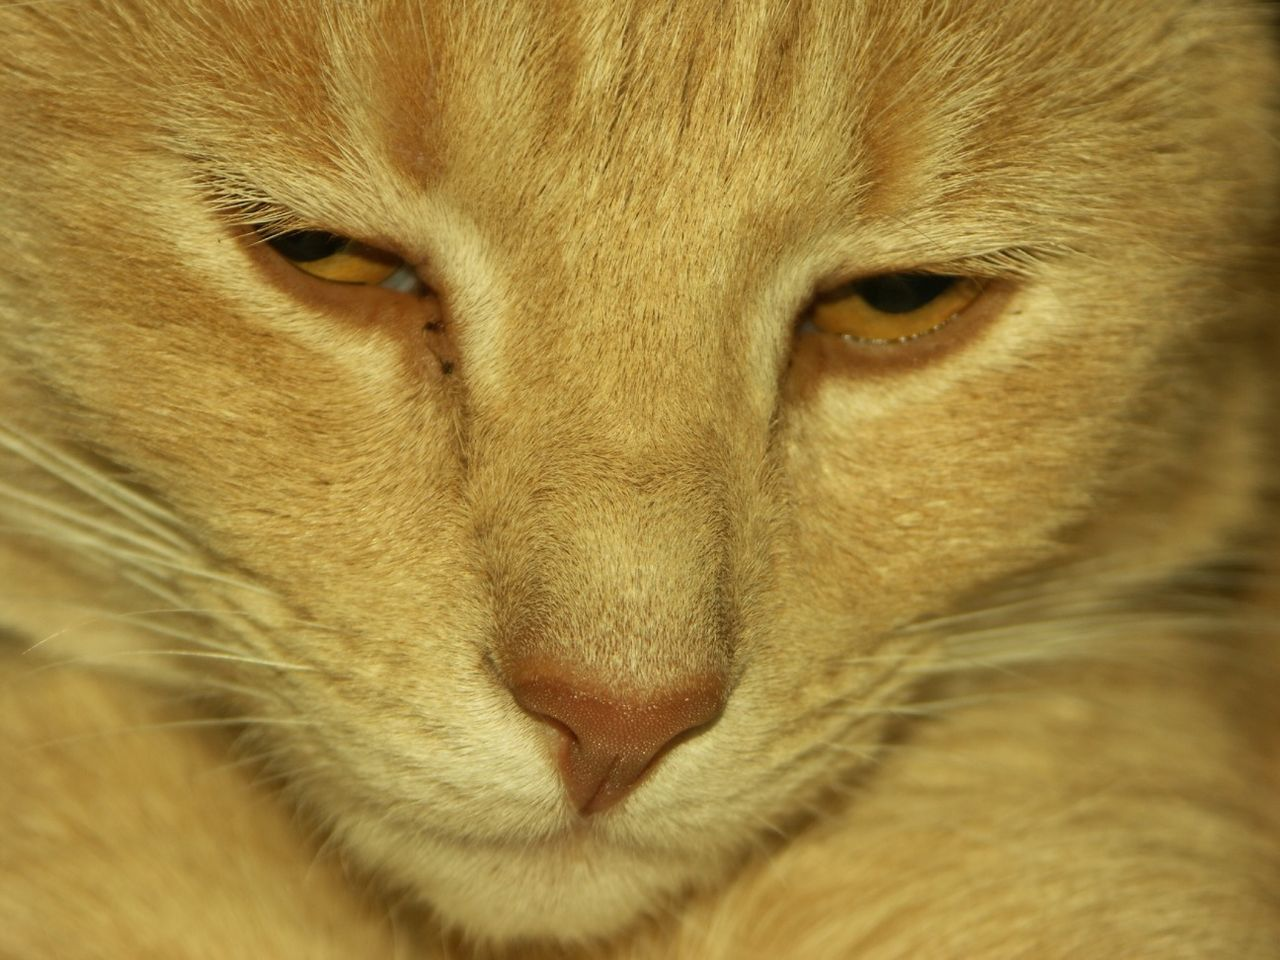 one animal, animal themes, mammal, close-up, animal head, pets, no people, portrait, domestic animals, feline, domestic cat, full frame, indoors, day